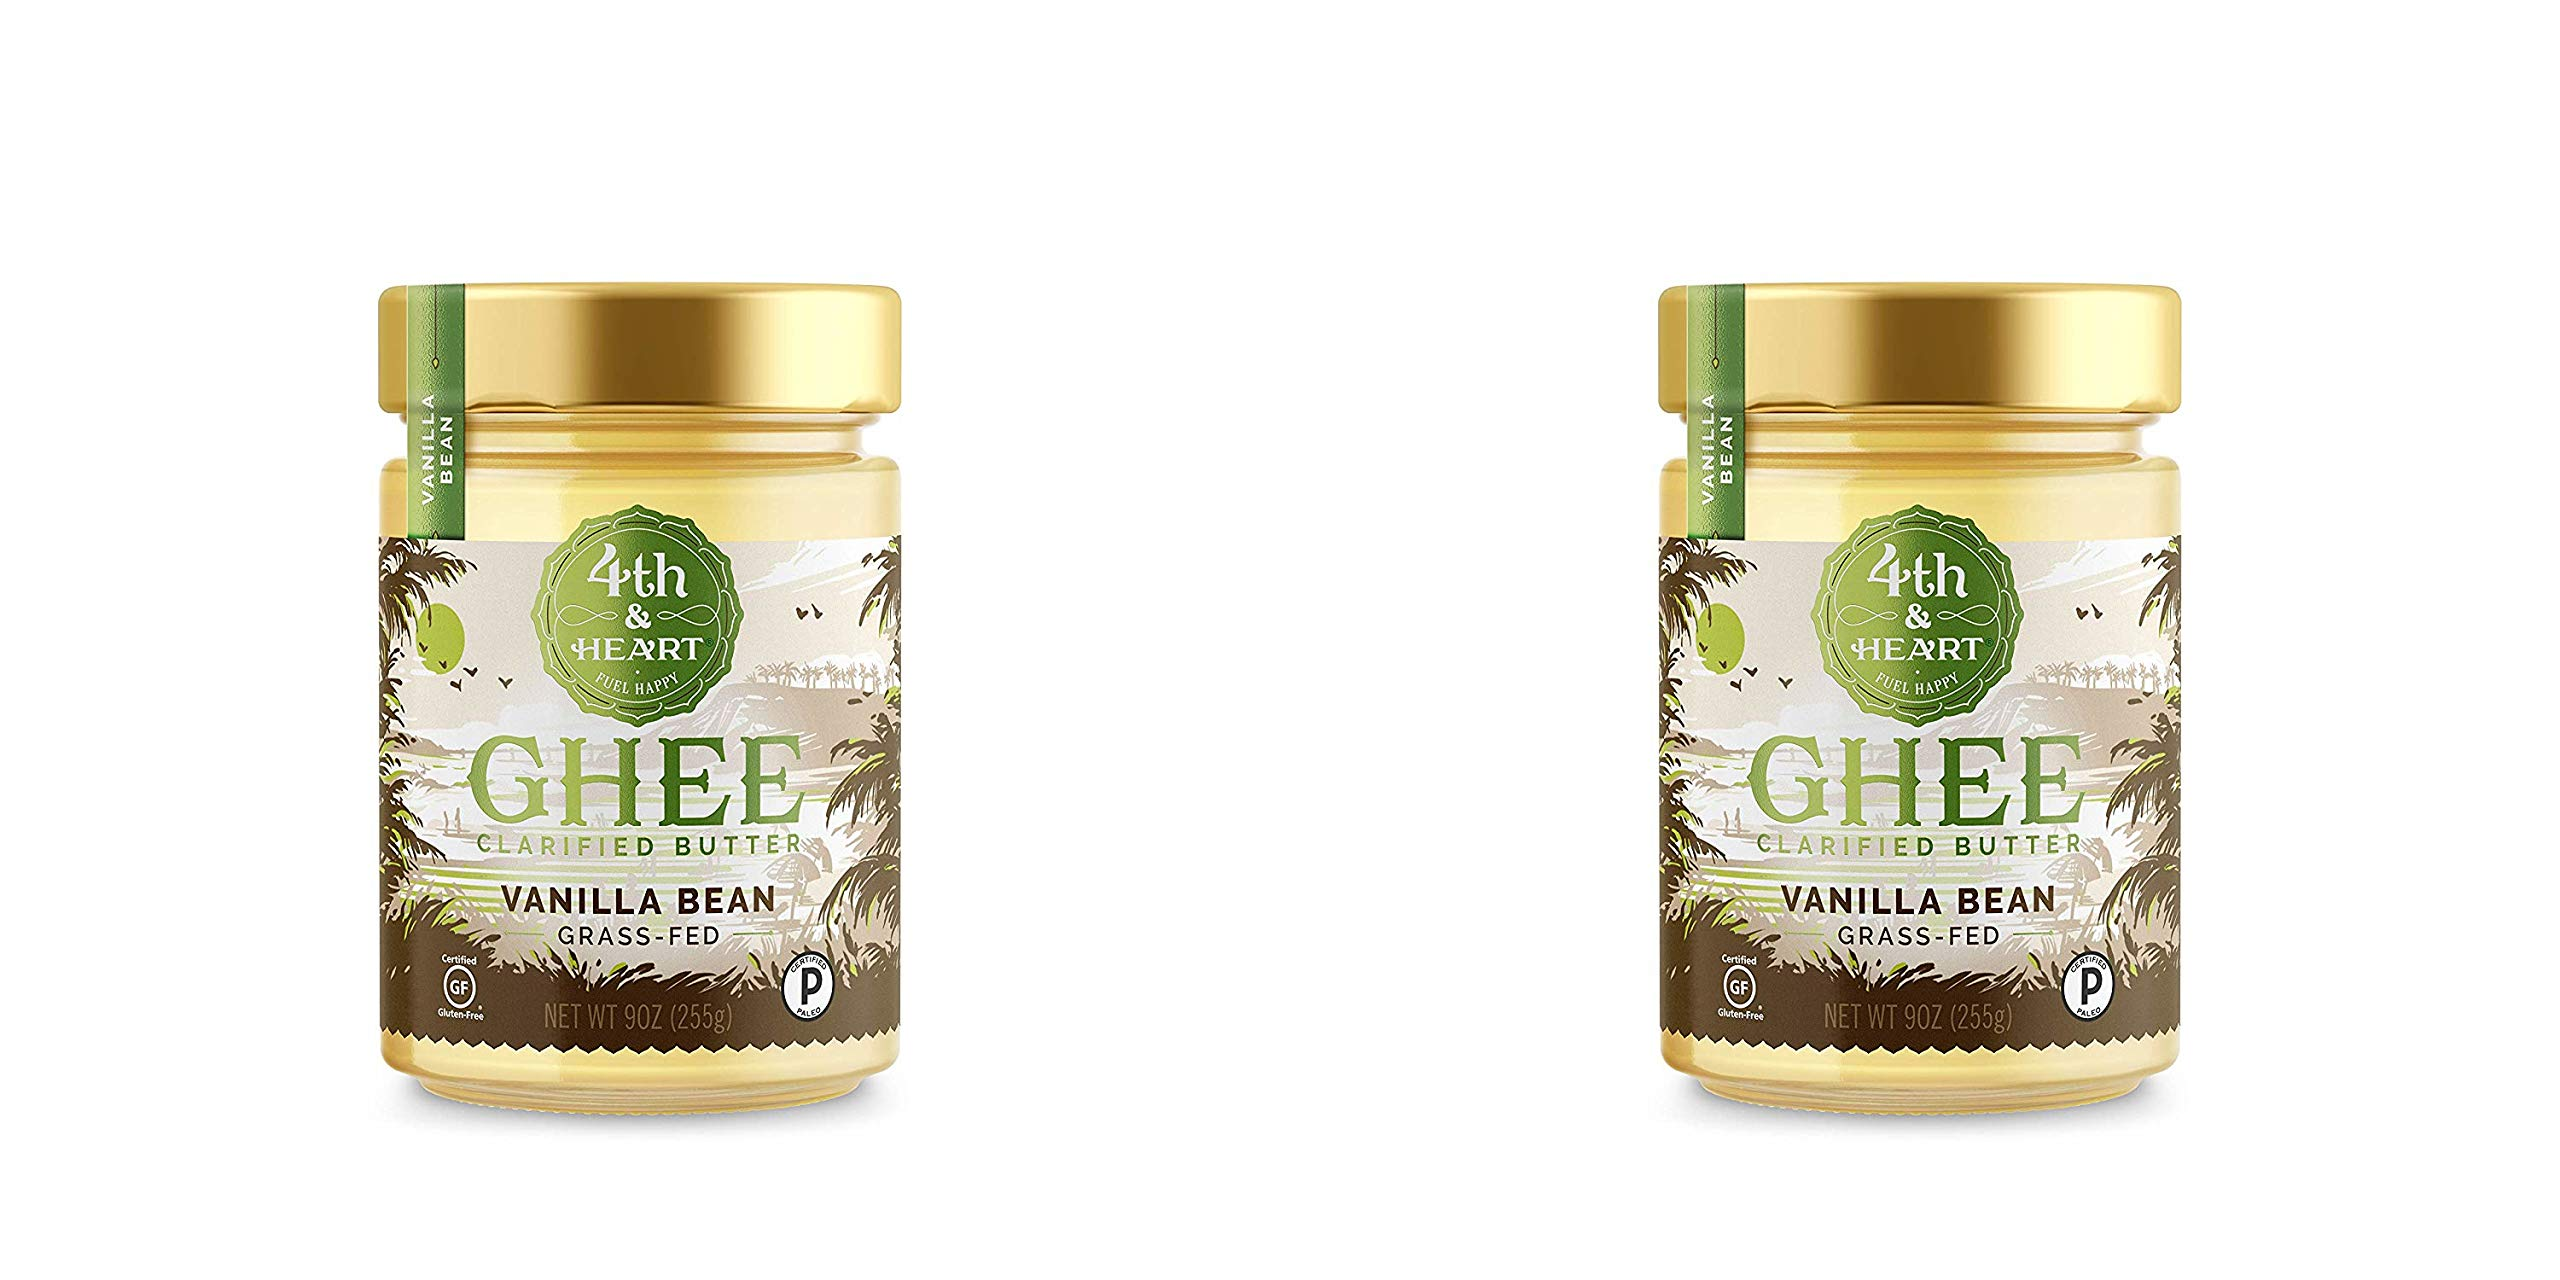 Vanilla Bean Grass-Fed Ghee Butter by 4th & Heart, 9 Ounce, Pasture Raised, Non-GMO, Lactose Free, Certified Paleo, Keto-Friendly - 2 Pack by 4th & Heart (Image #1)